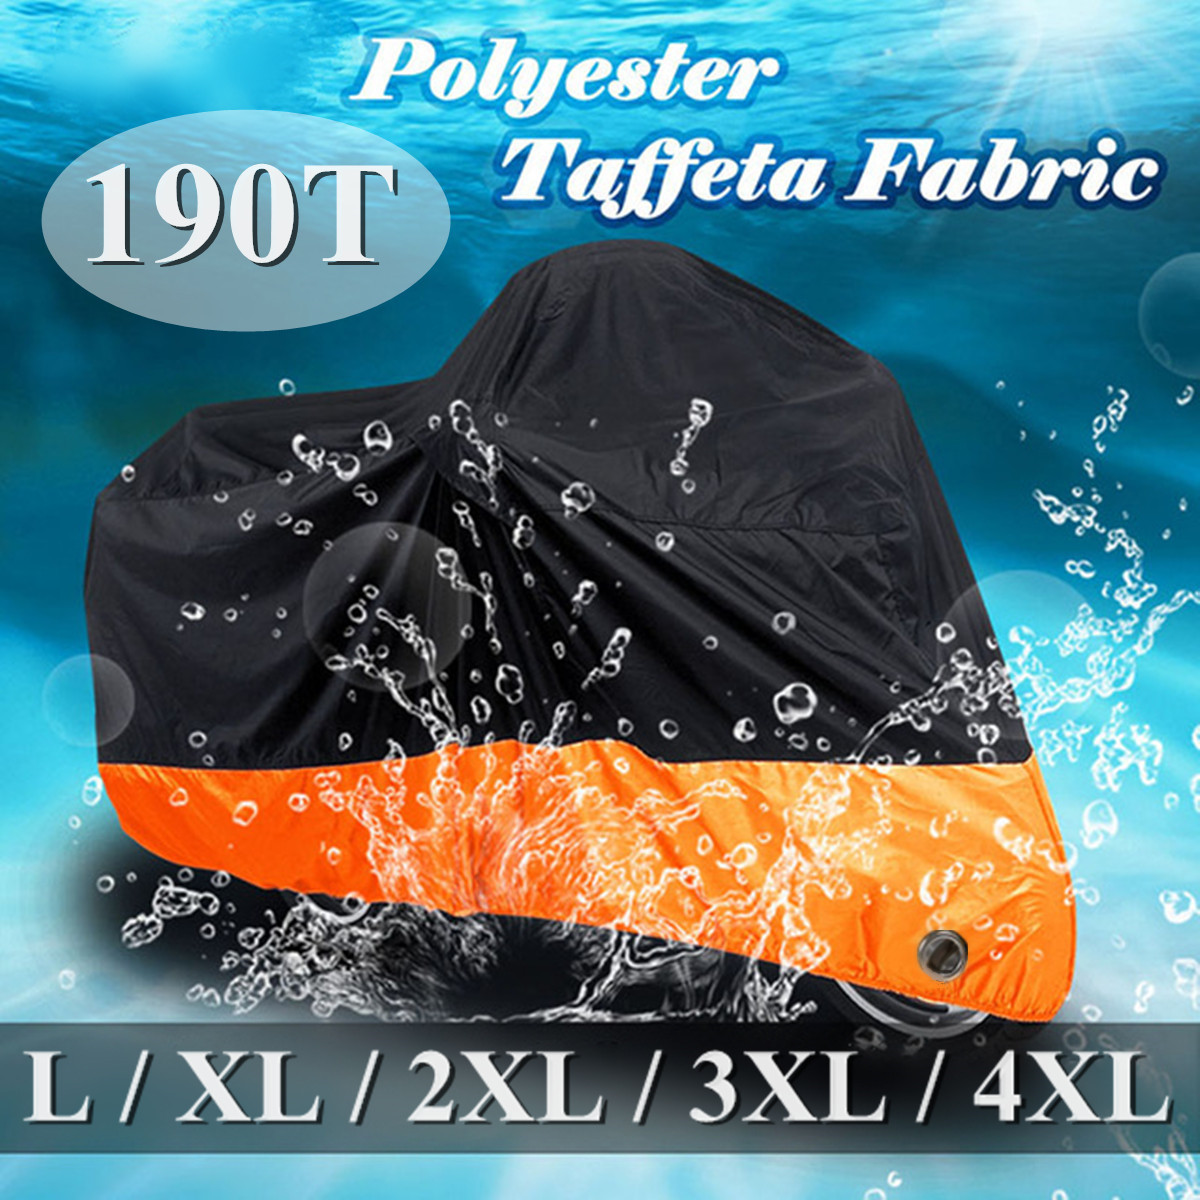 Waterproof Protect Rain Dust UV Motorcycle Cover Case 190T Outdoor Motorbike Protector L/XL/2XL/3XL/4XL Elastic Hem Side Squeeze